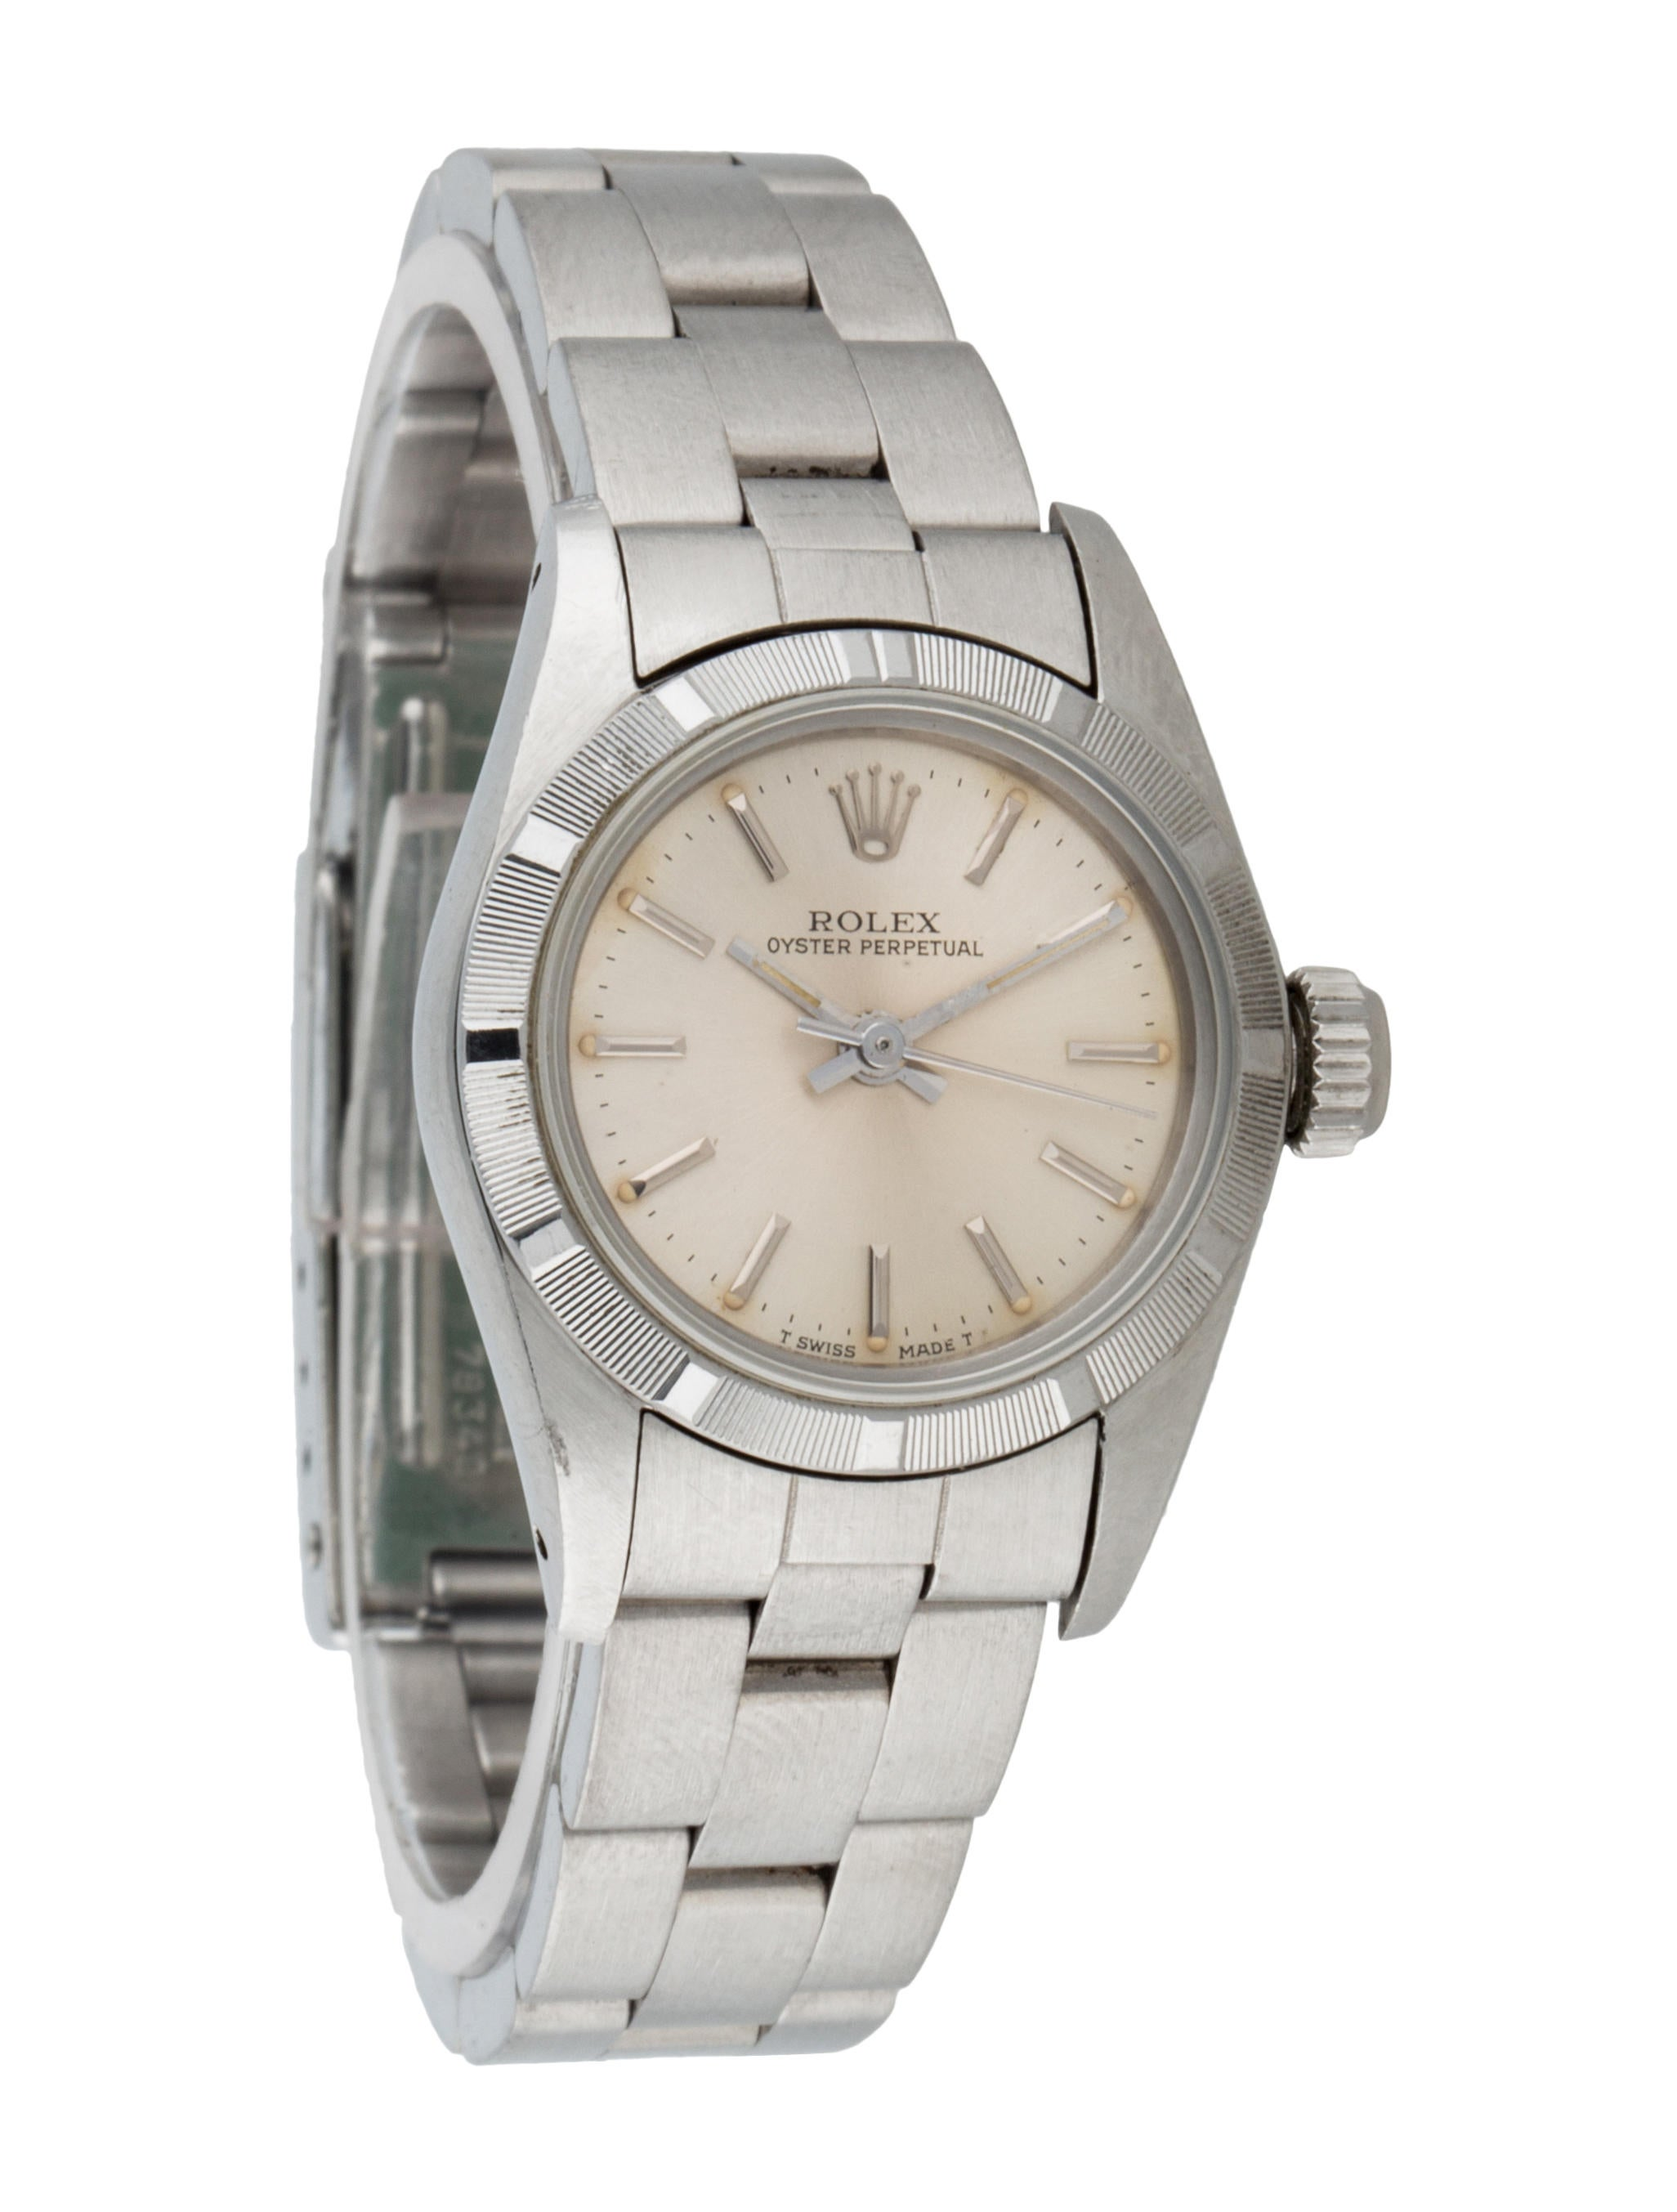 Rolex oyster perpetual watch bracelet rlx21144 the realreal for Oyster watches